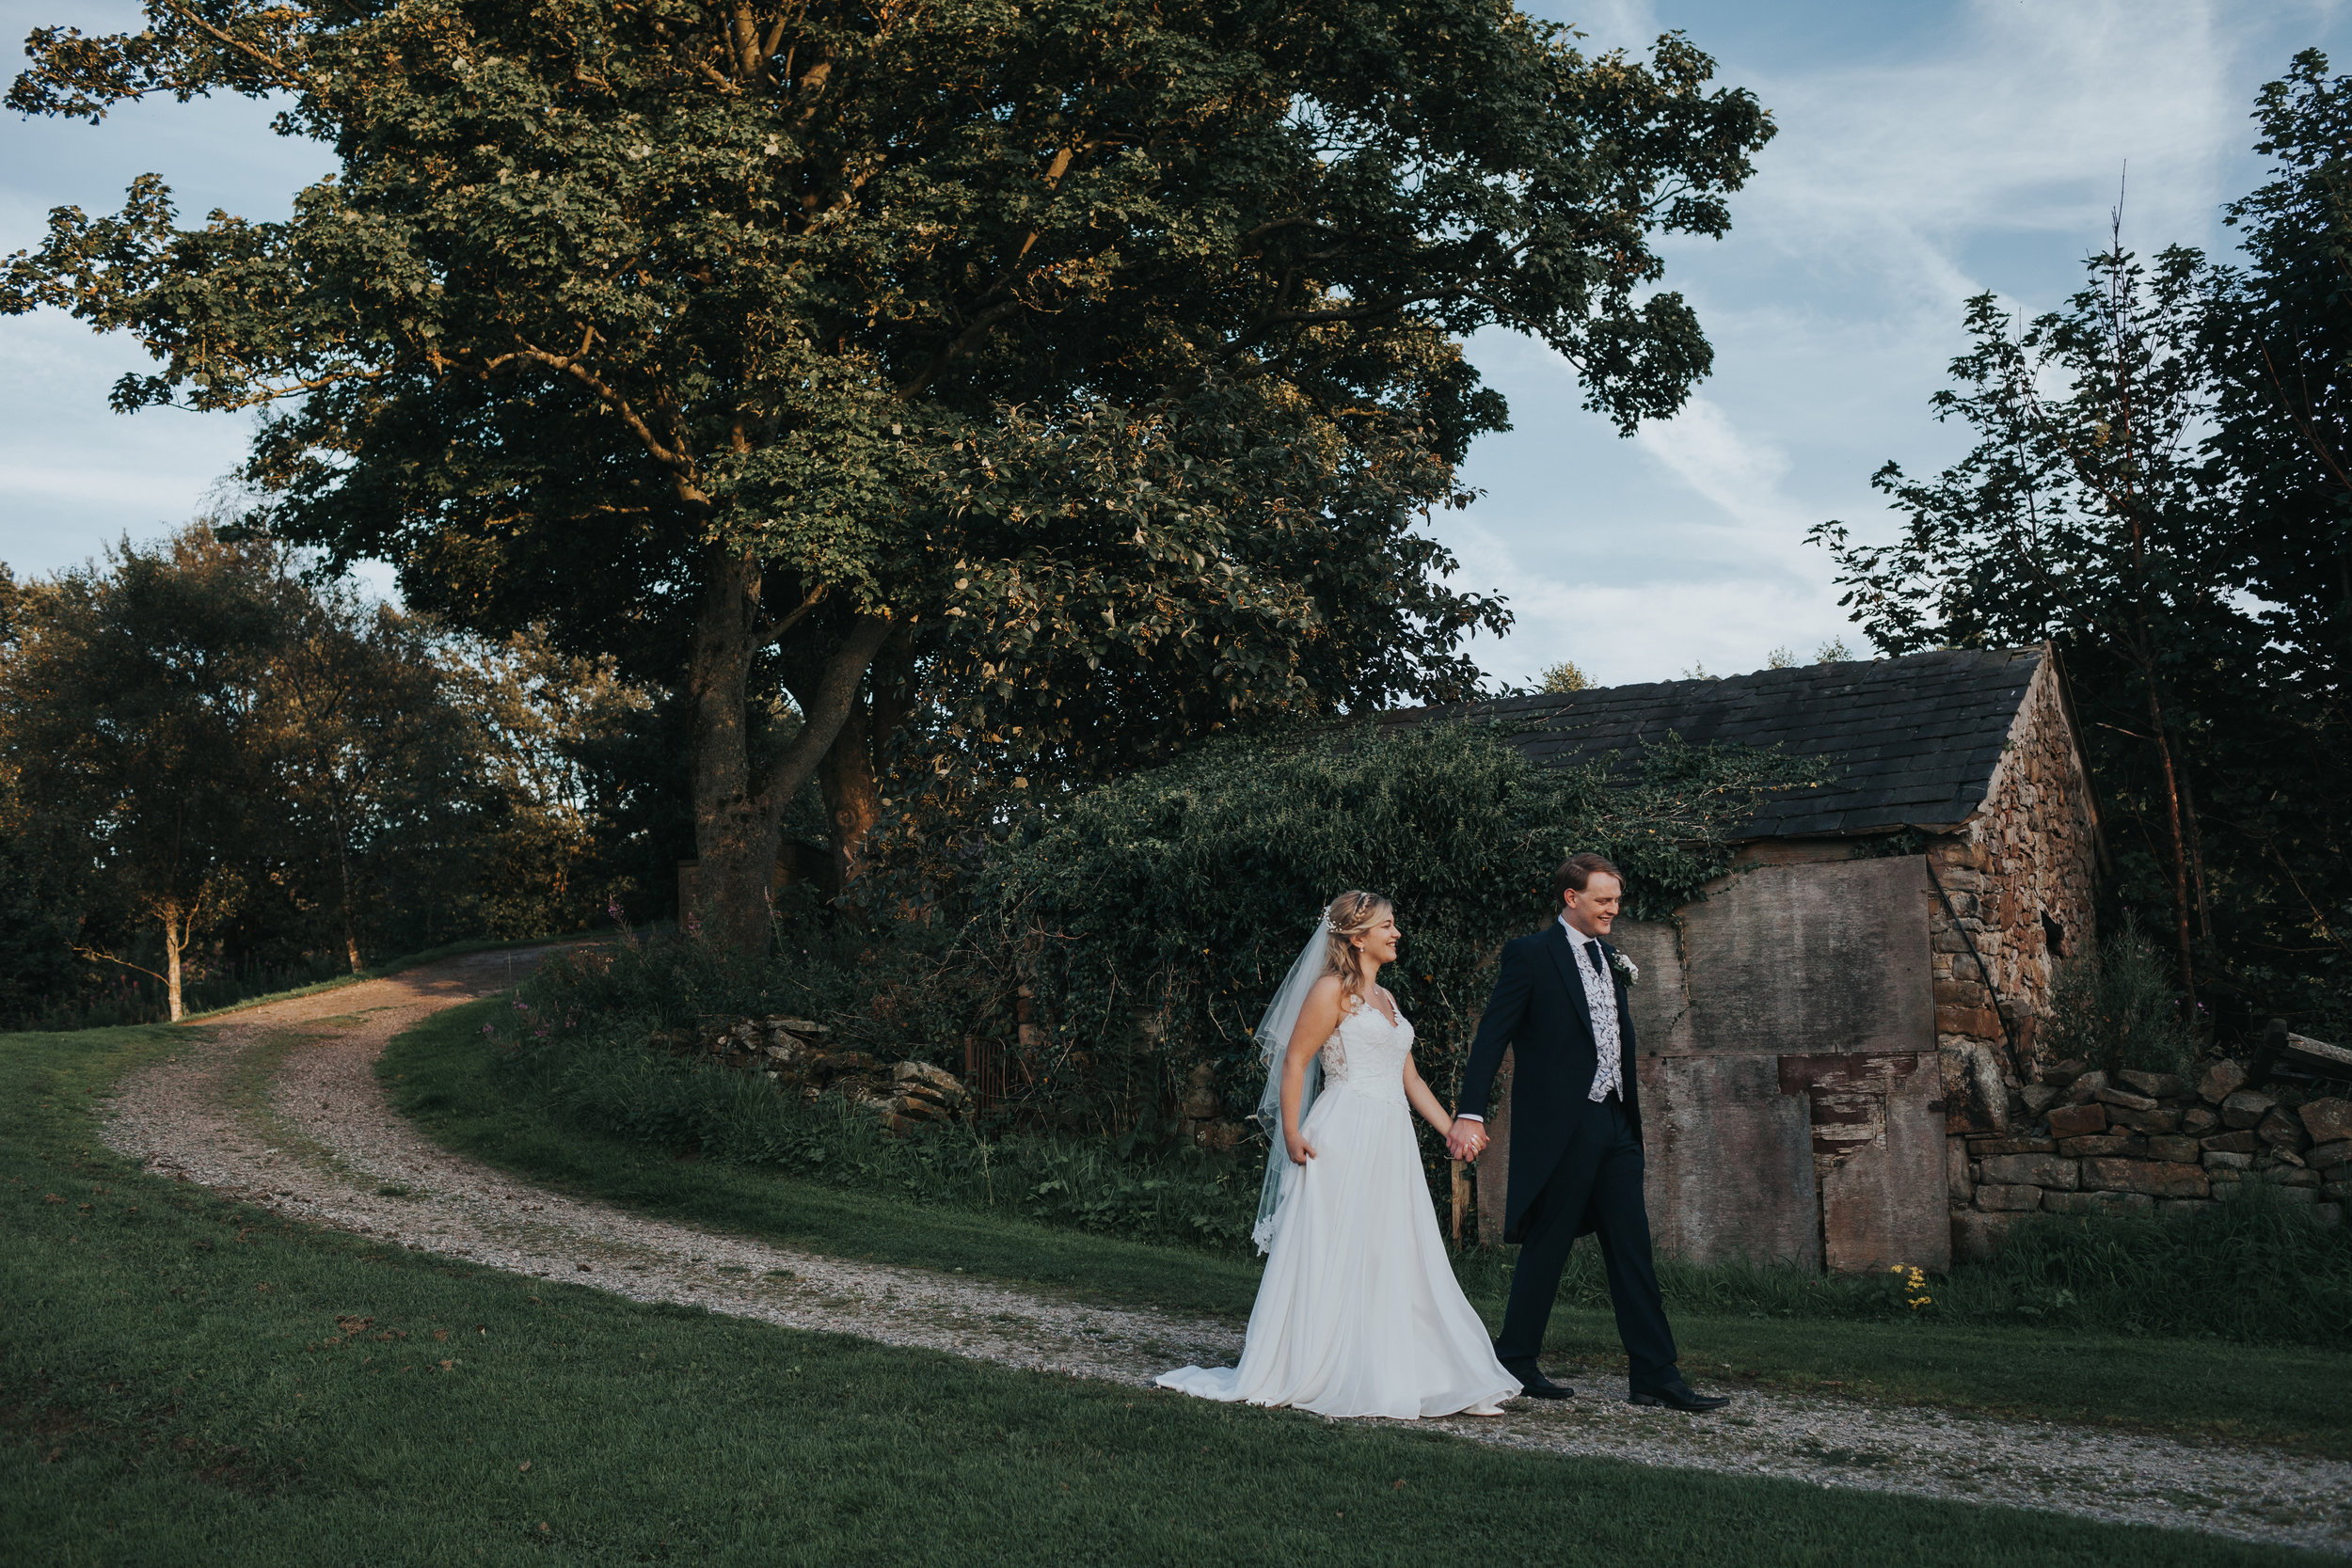 Bride and Groom walk past a derelict house.